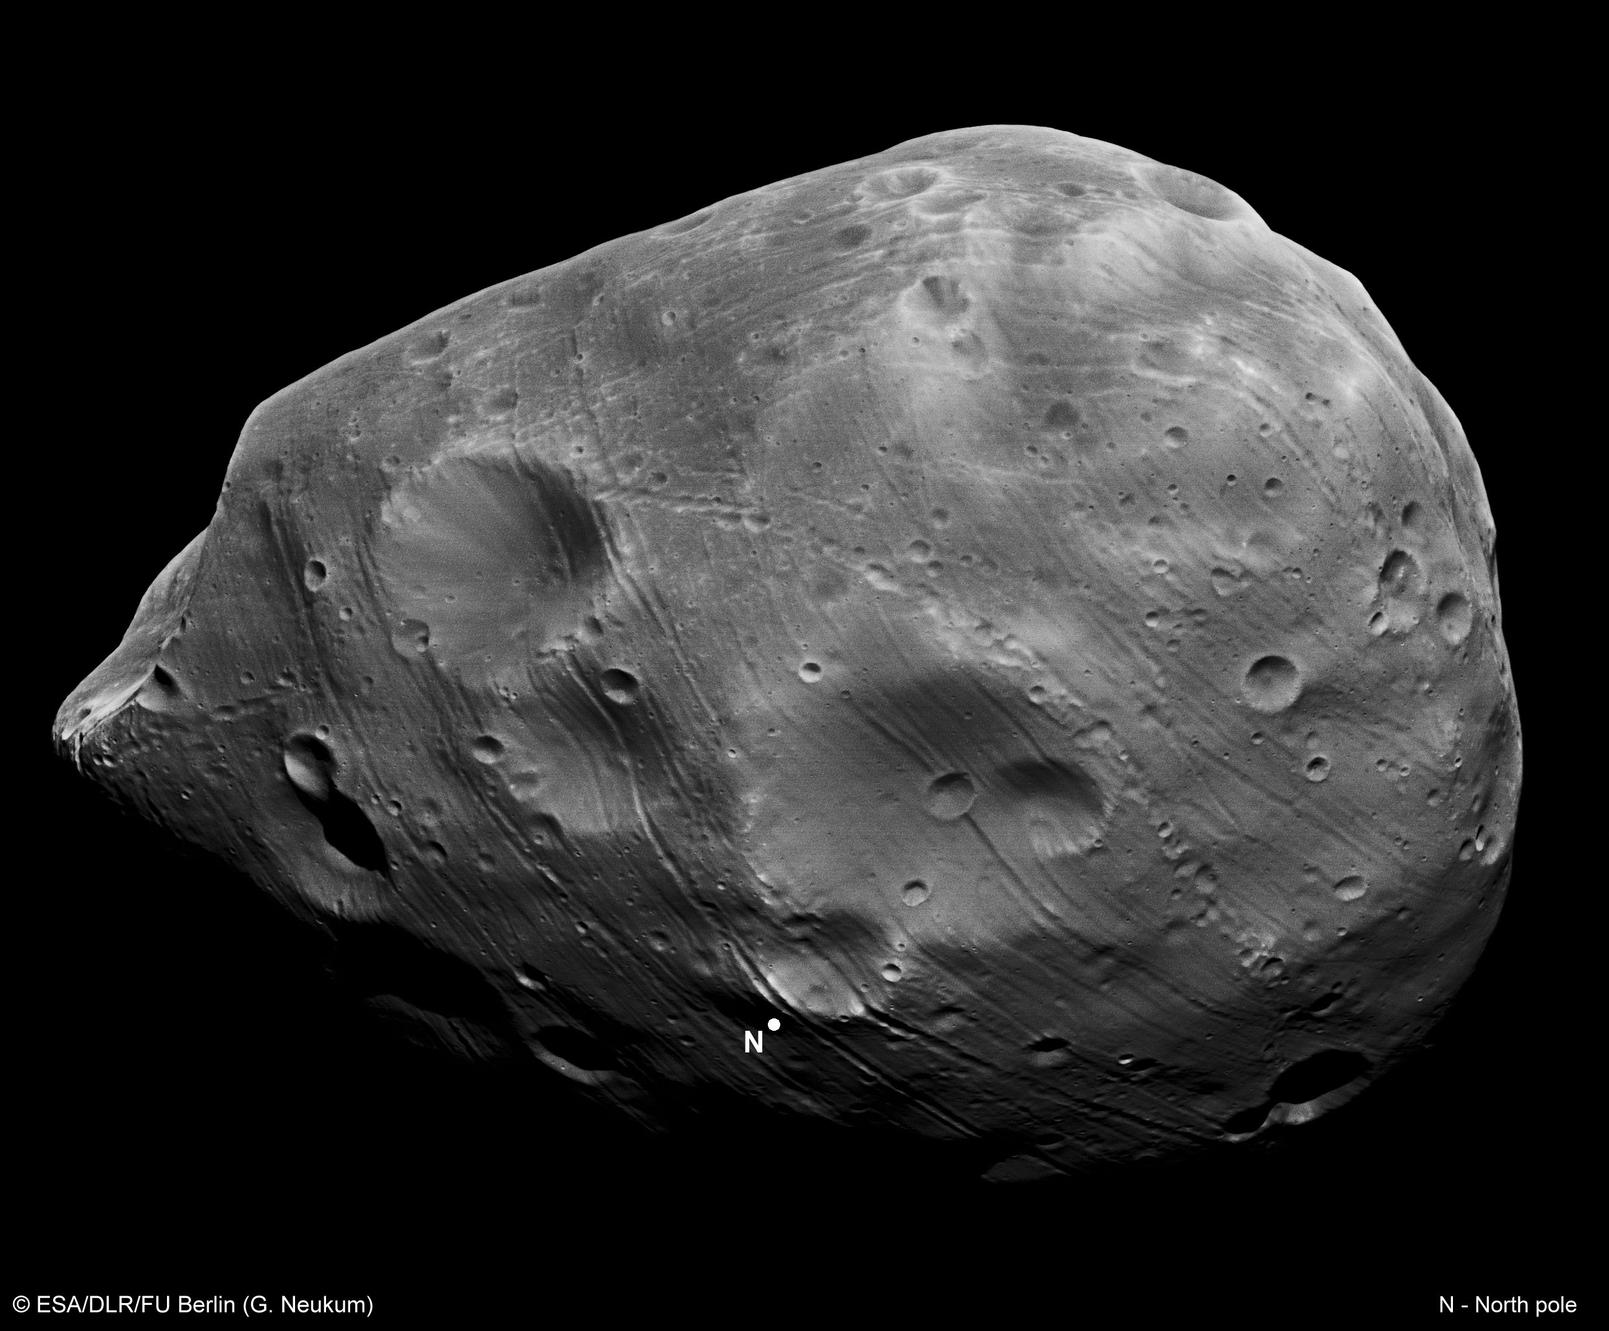 The origin of Phobos, the larger of the two moons orbiting Mars, remains unknown.